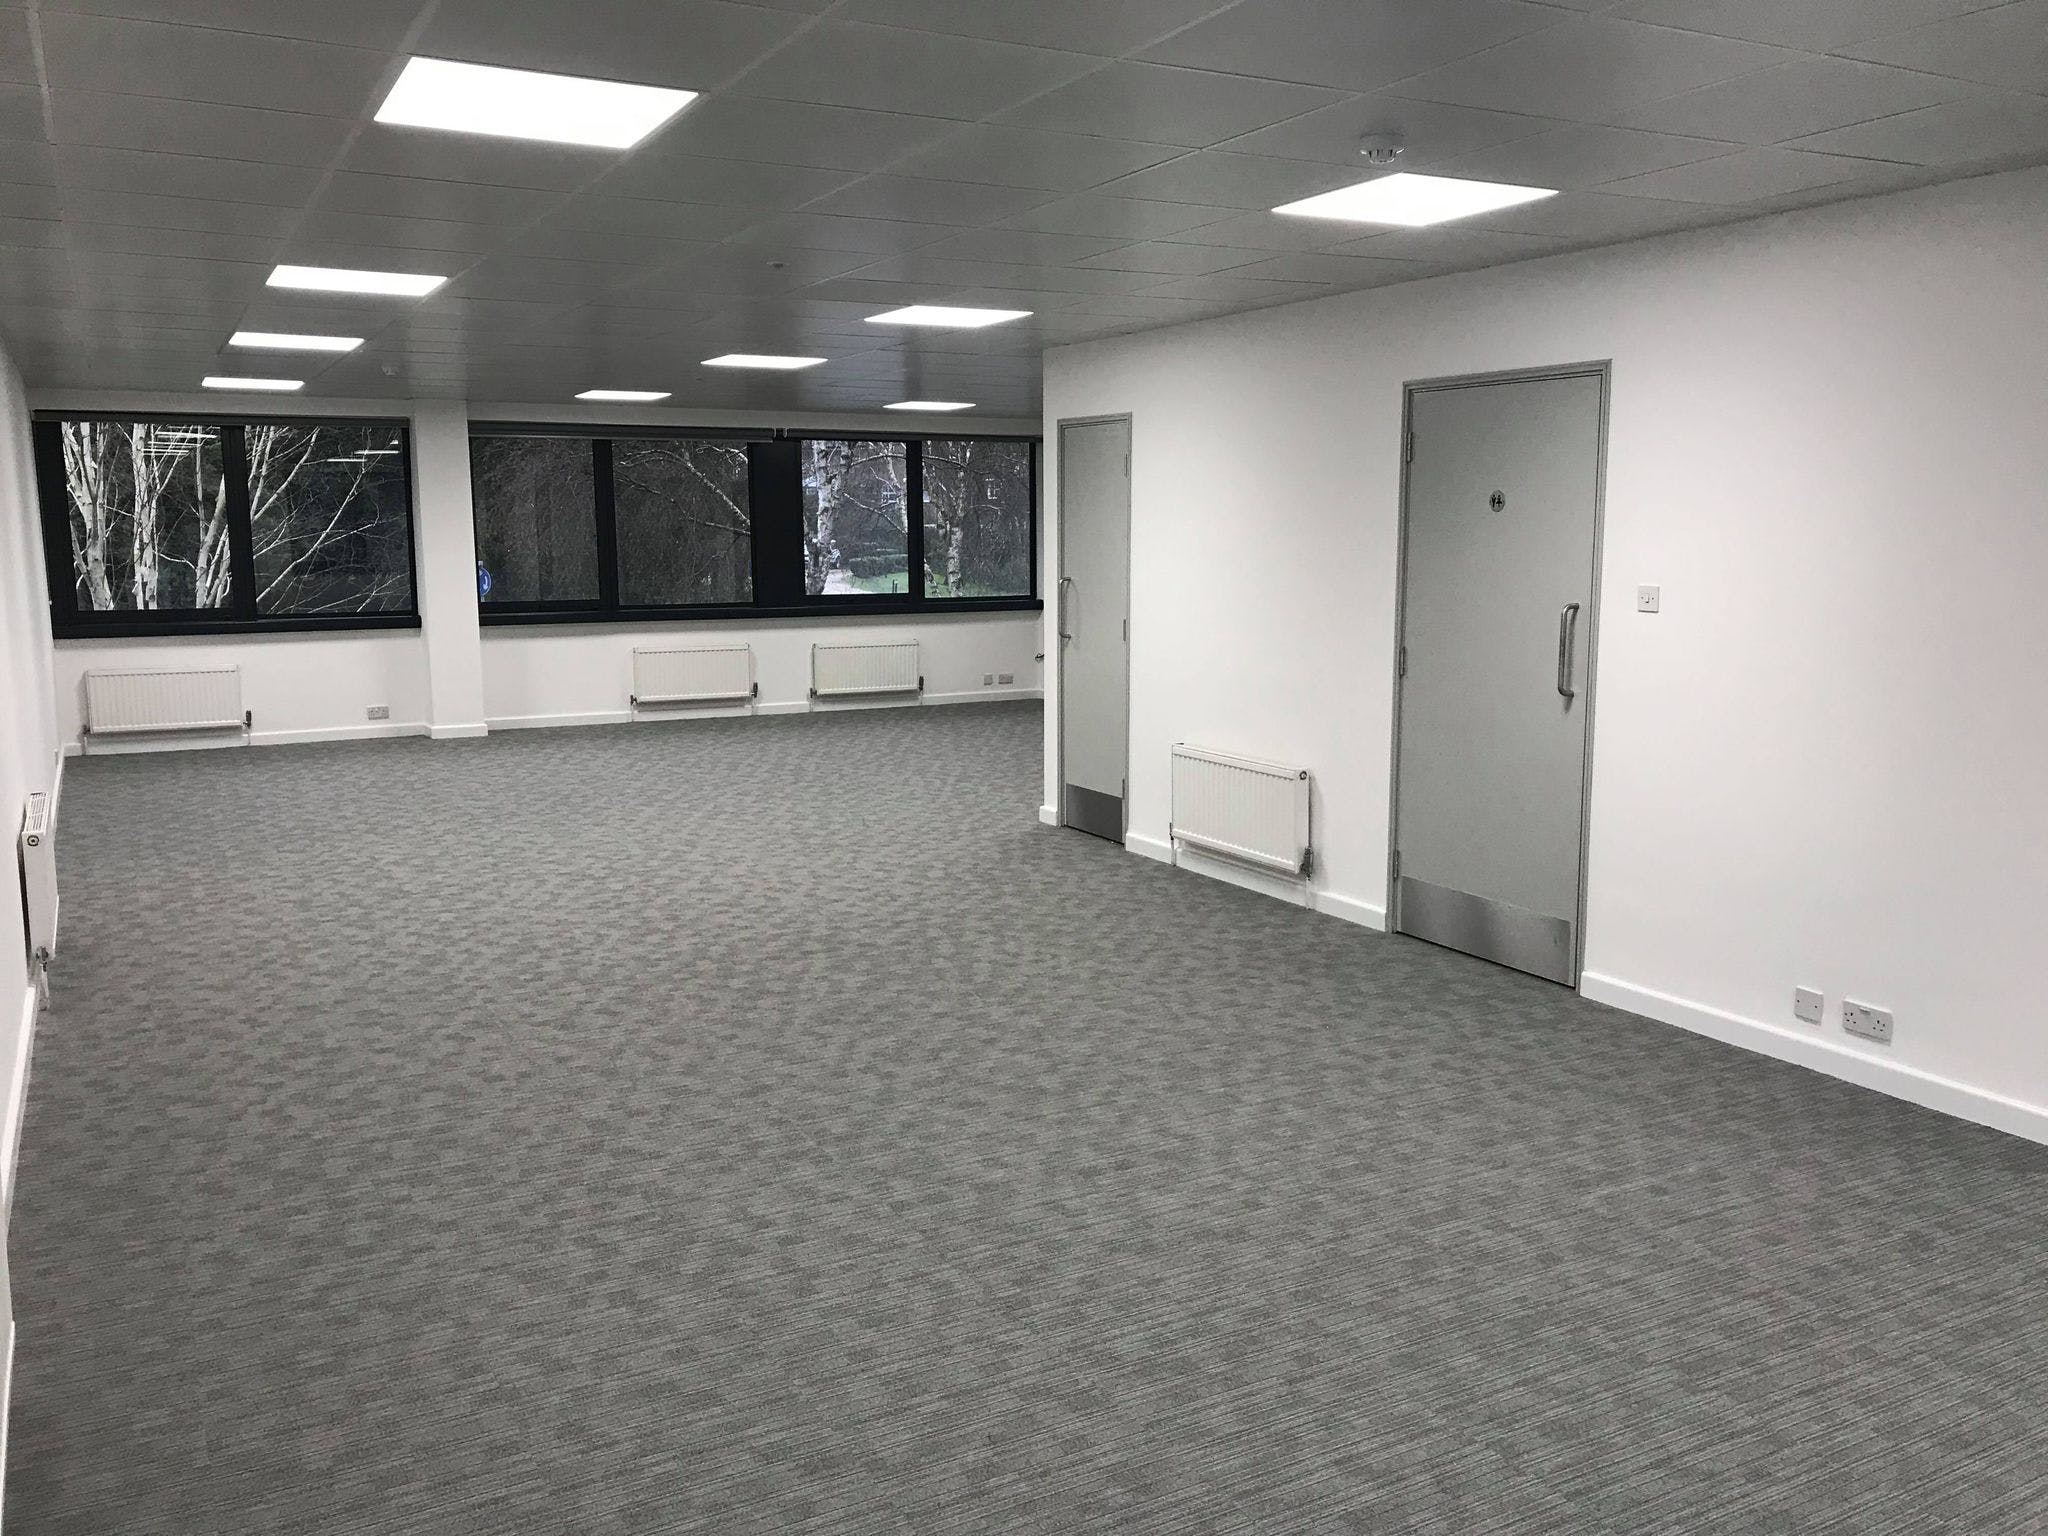 7 Godalming Business Centre (First Floor), Woolsack Way, Godalming, Offices To Let - 150840329_438627167342070_2241921634937398768_n.jpg